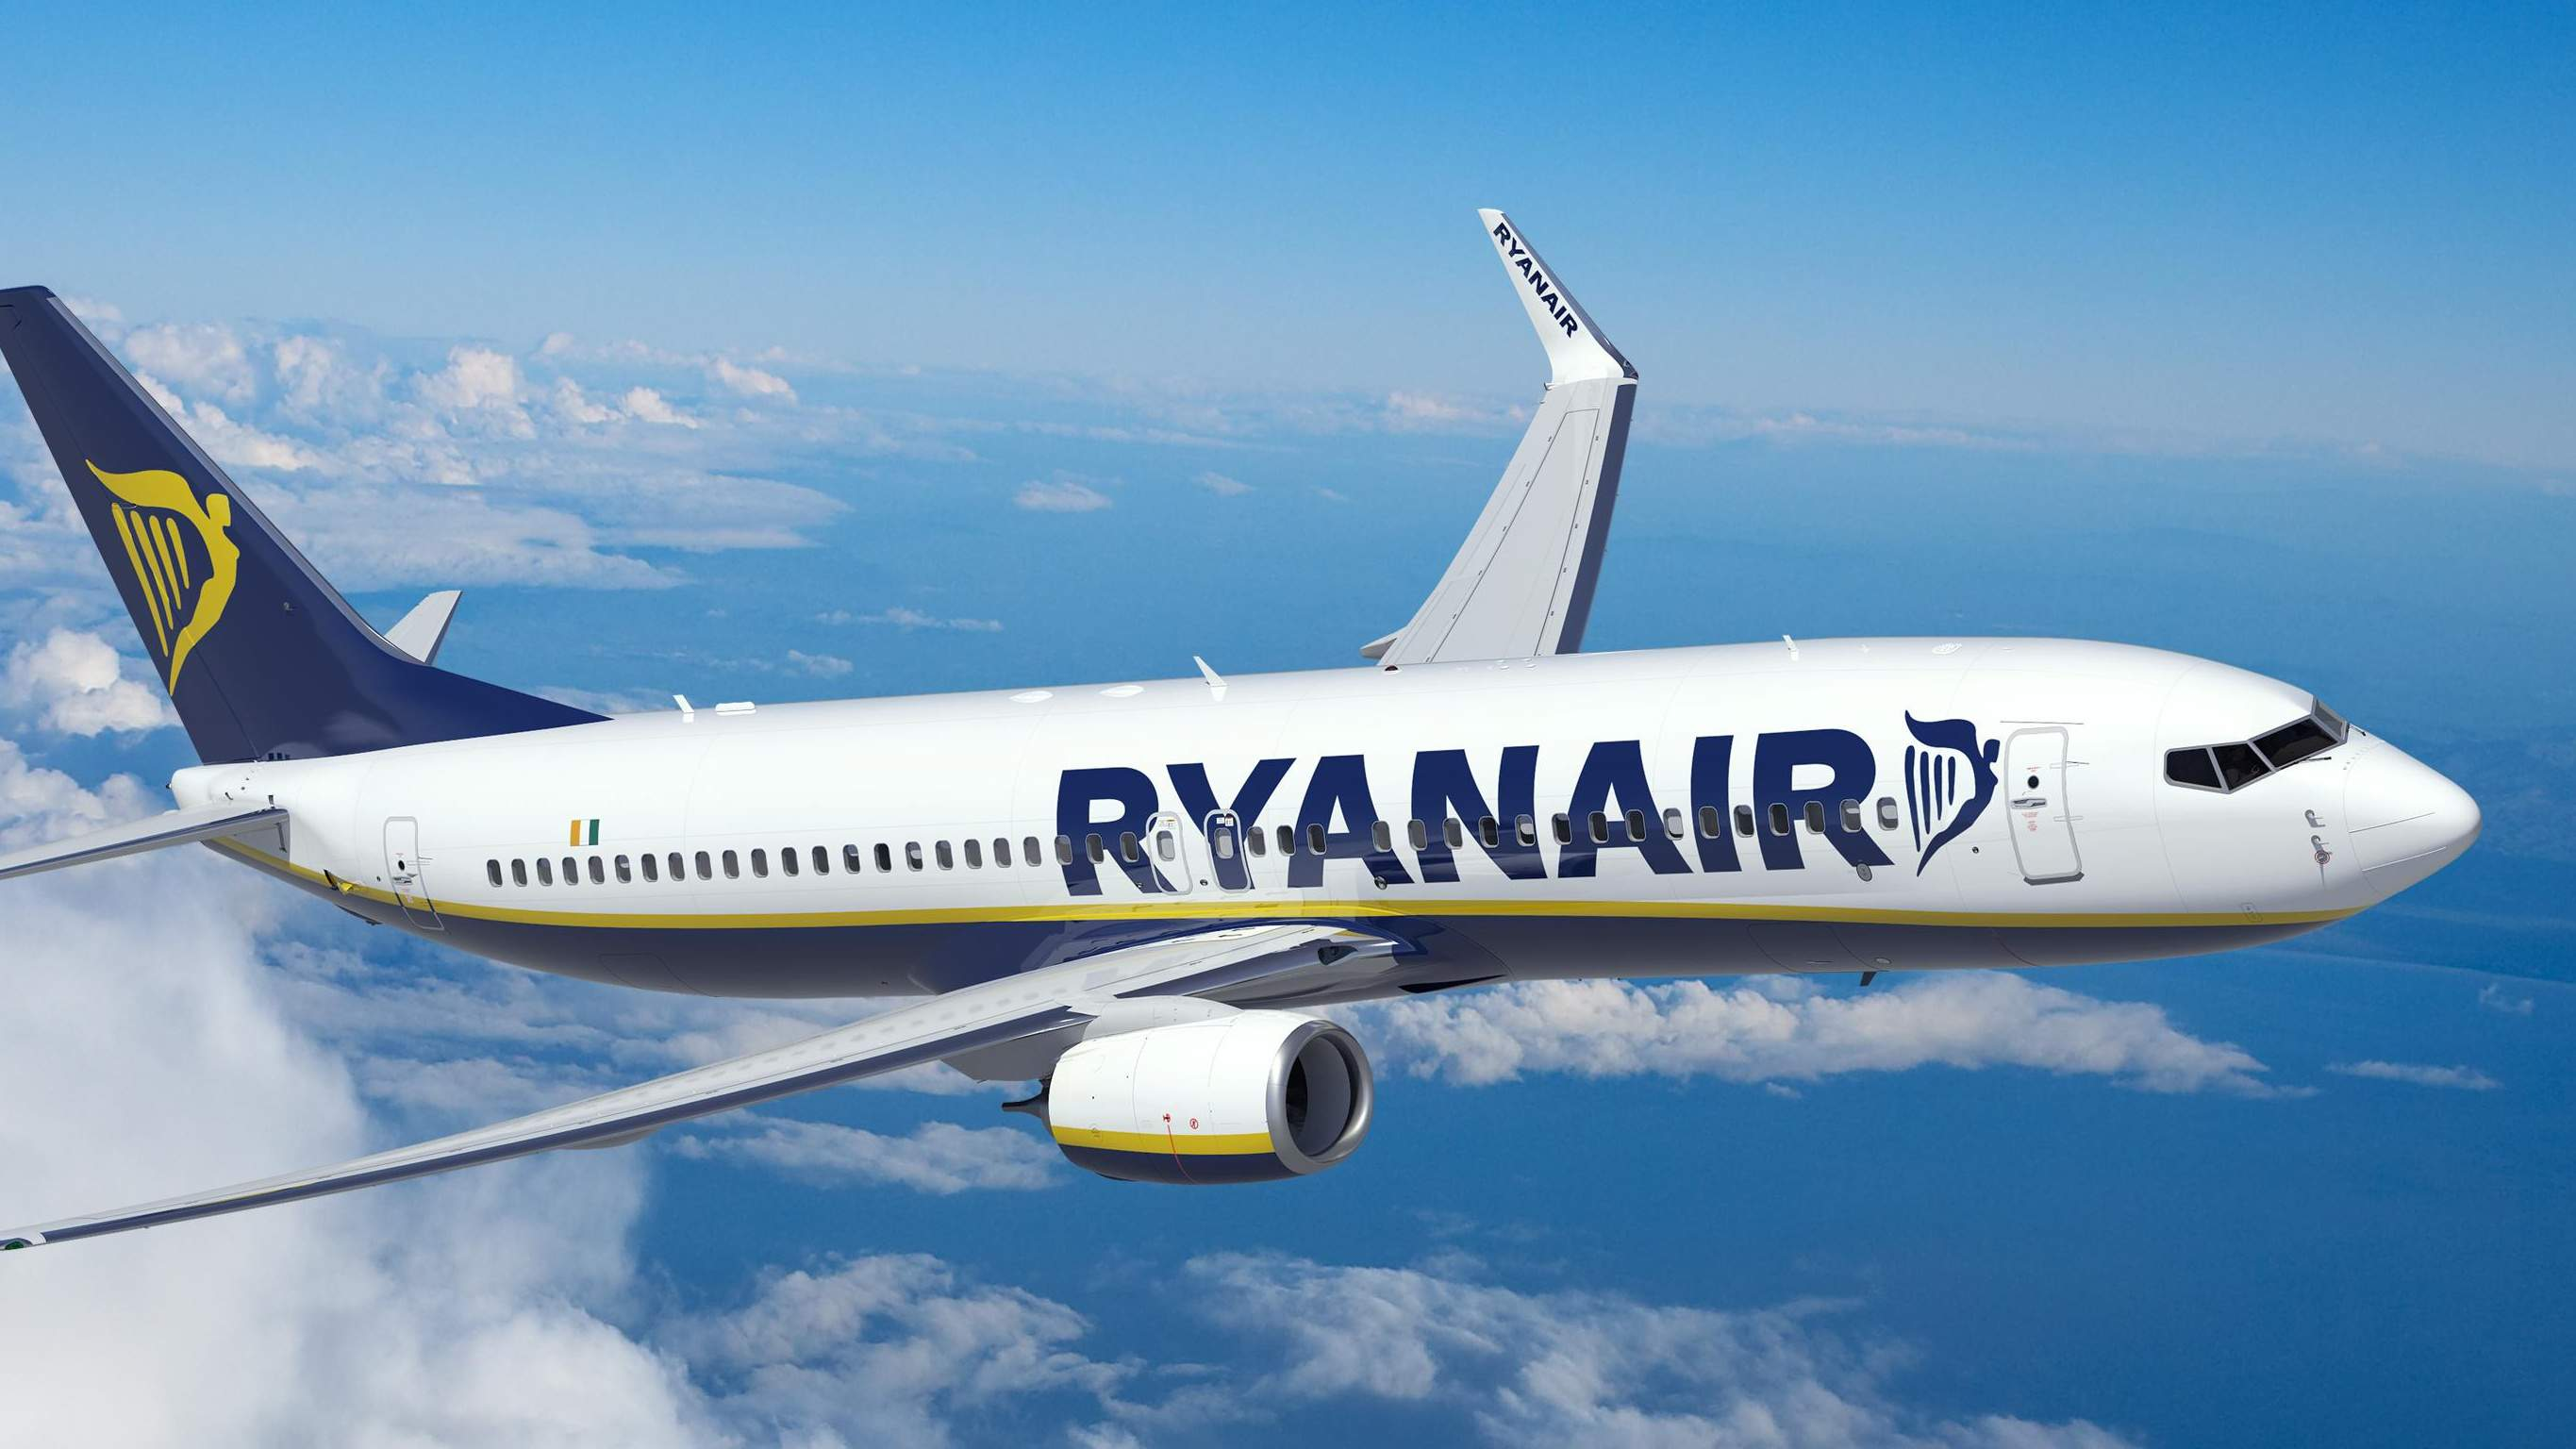 Ryanair Passengers To Consider Alternative Plans Ahead Of Pilot Strike